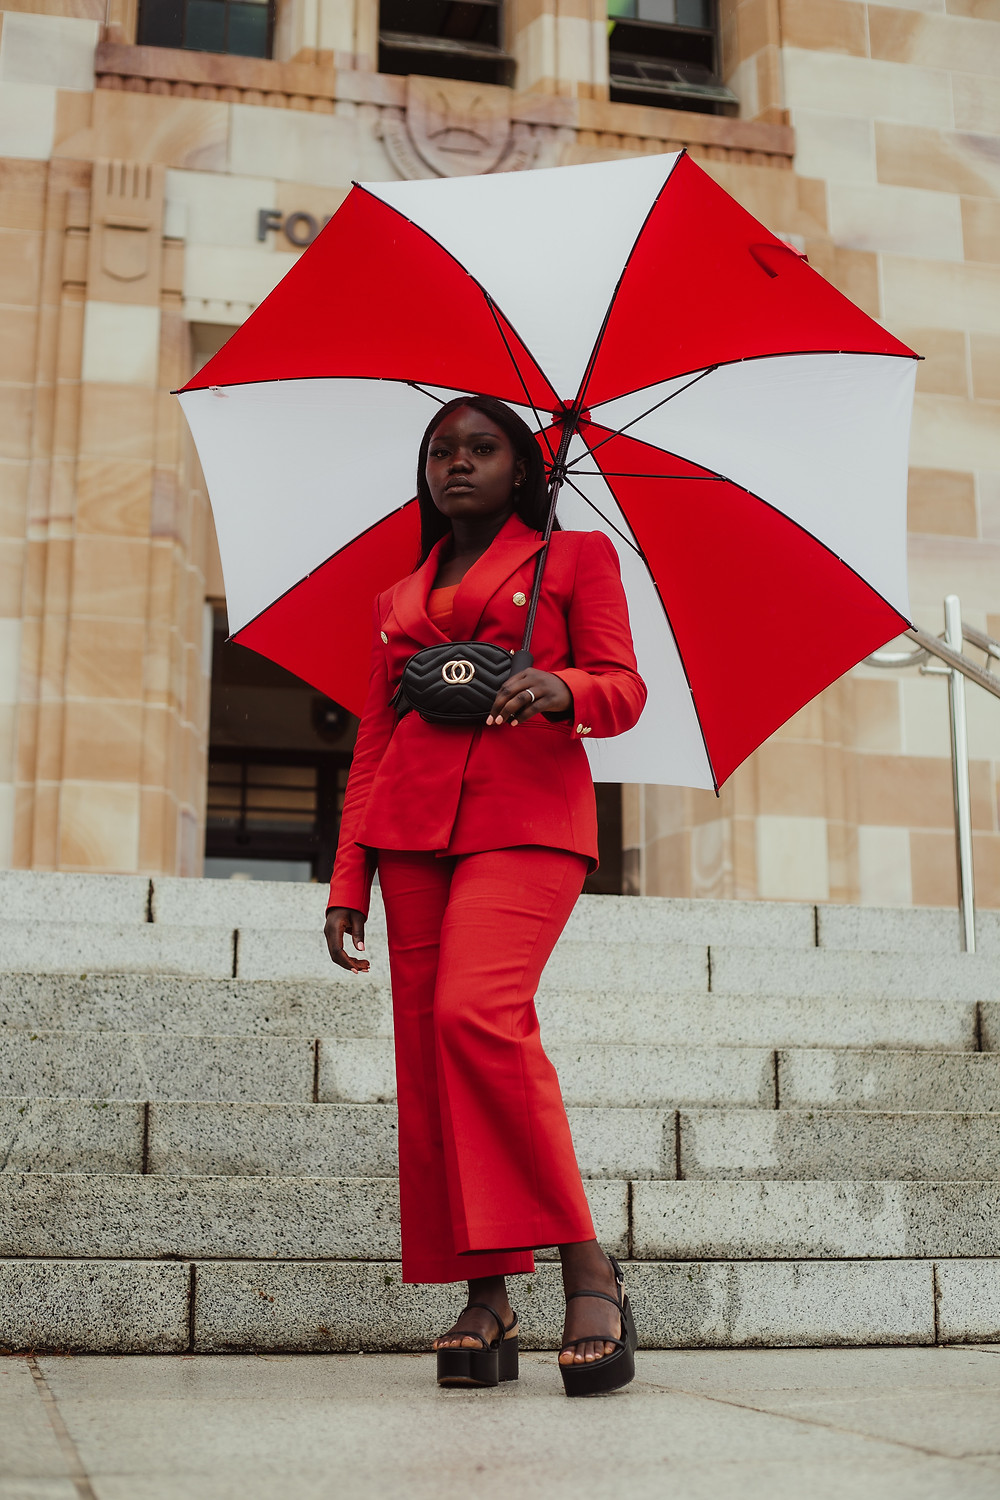 Woman in bold red outfit with white and black umbrella.